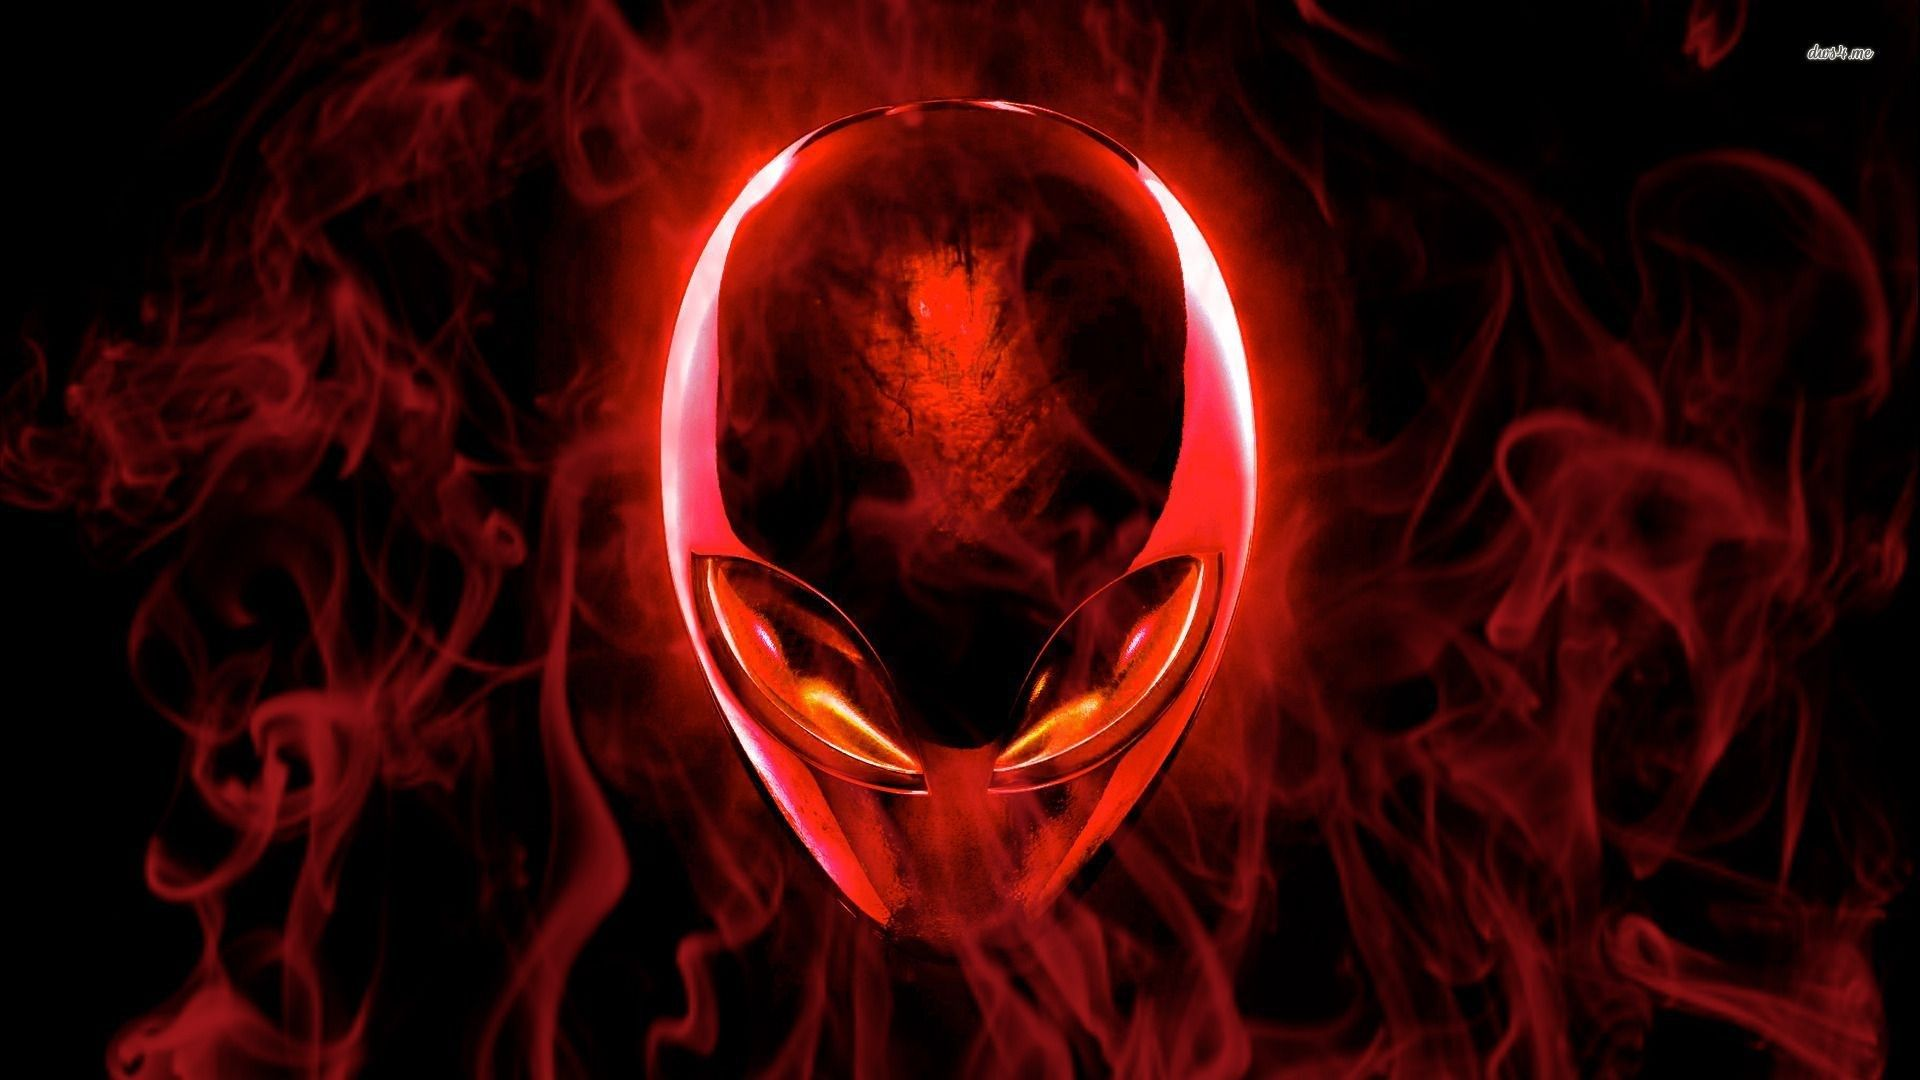 Backgrounds high resolution alienware red image by trayton little backgrounds high resolution alienware red image by trayton little 2016 05 17 voltagebd Choice Image